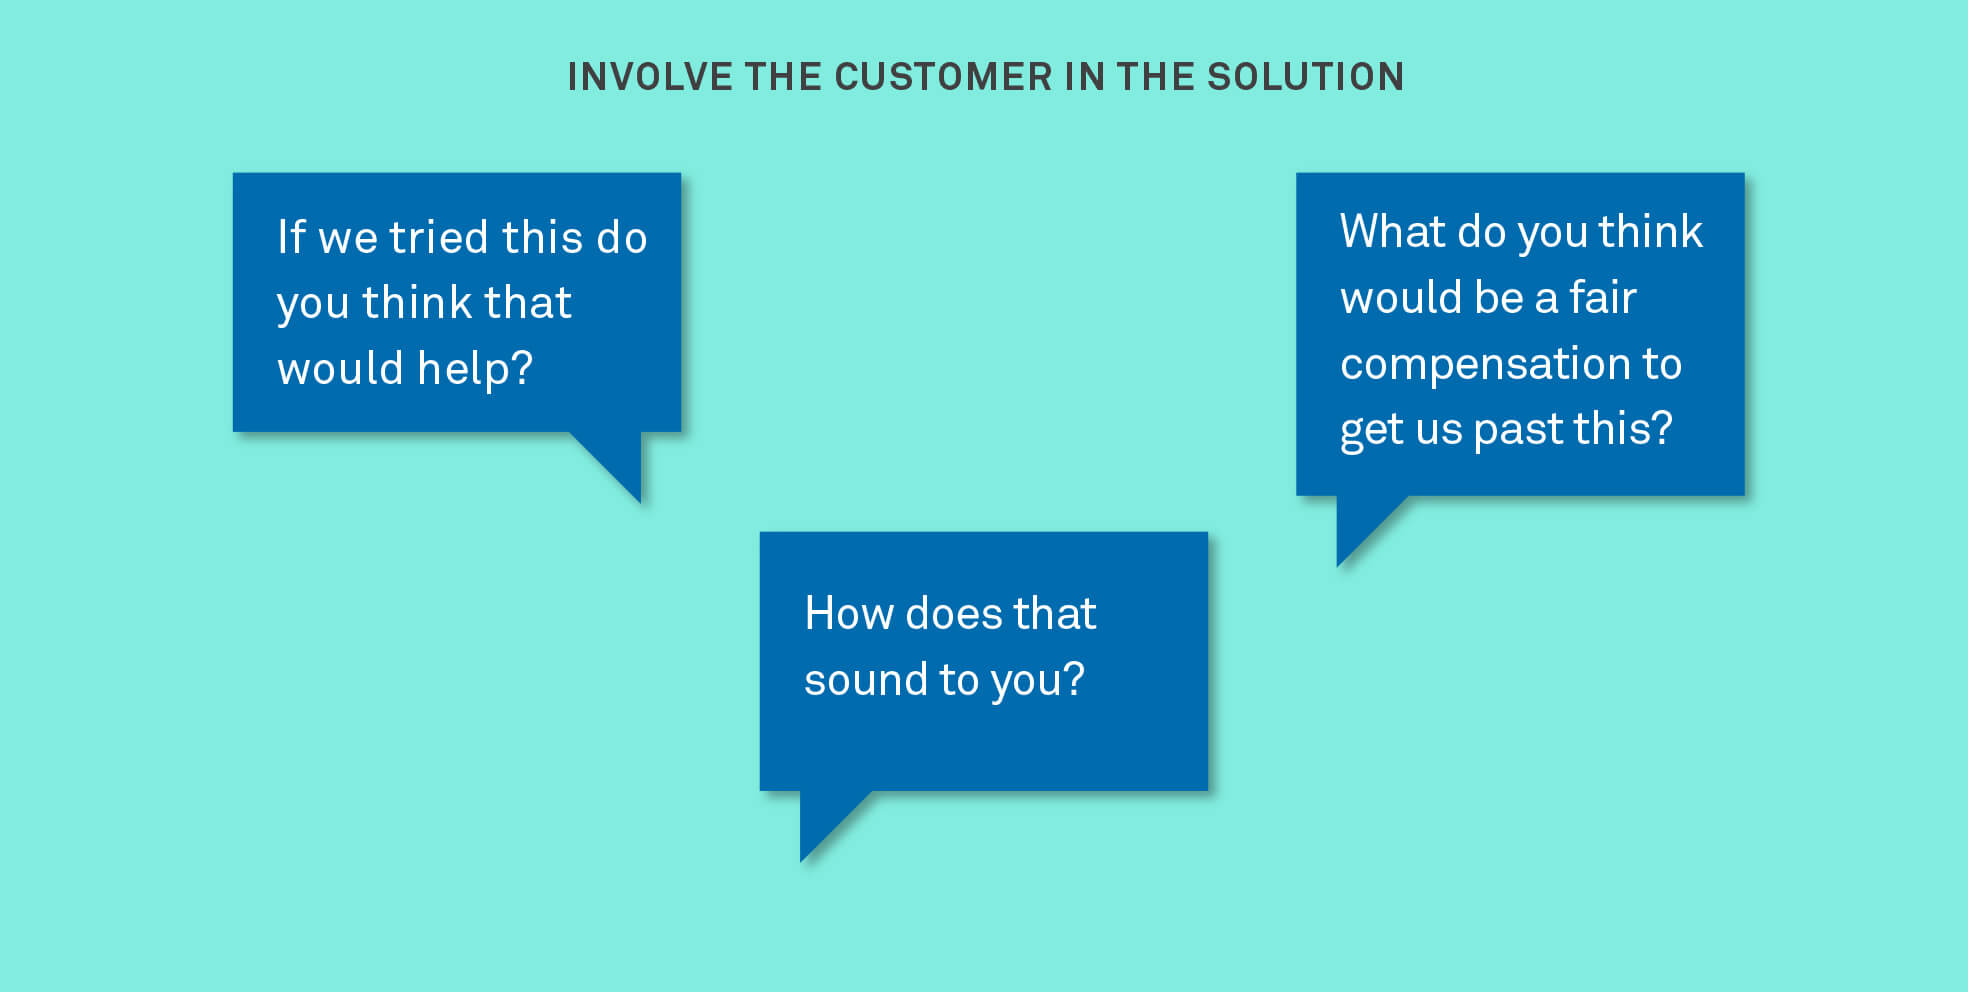 Examples of how you can involve the customer in coming up with a solution